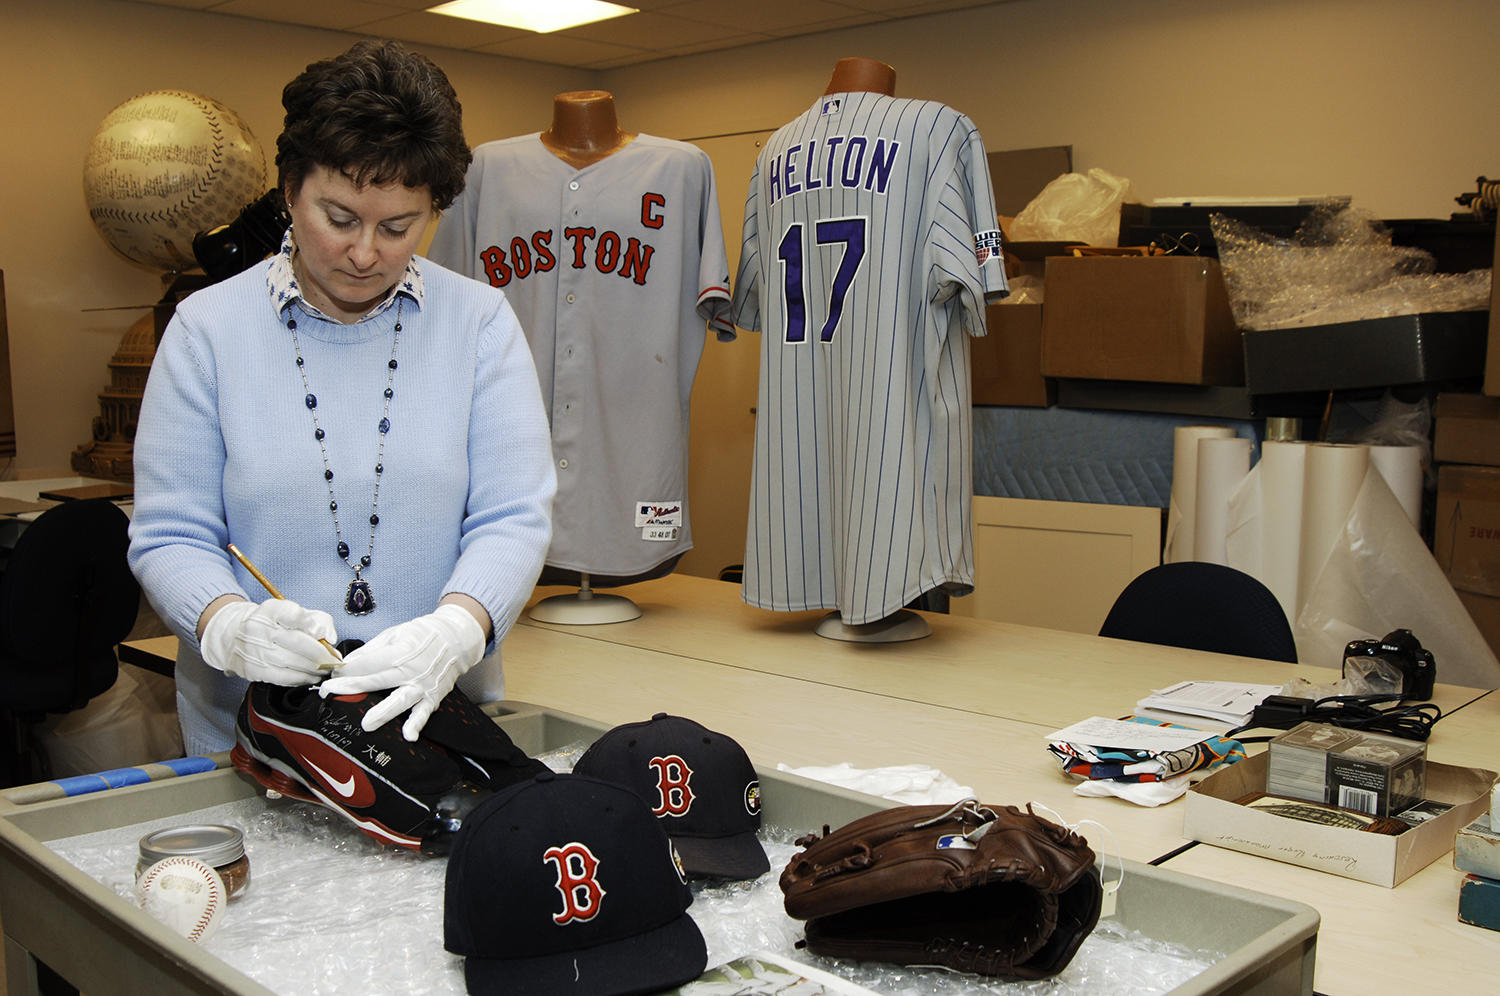 Hall of Fame director of collections Sue MacKay accessions artifacts prior to storing them in collections. (Milo Stewart Jr./National Baseball Hall of Fame and Museum)